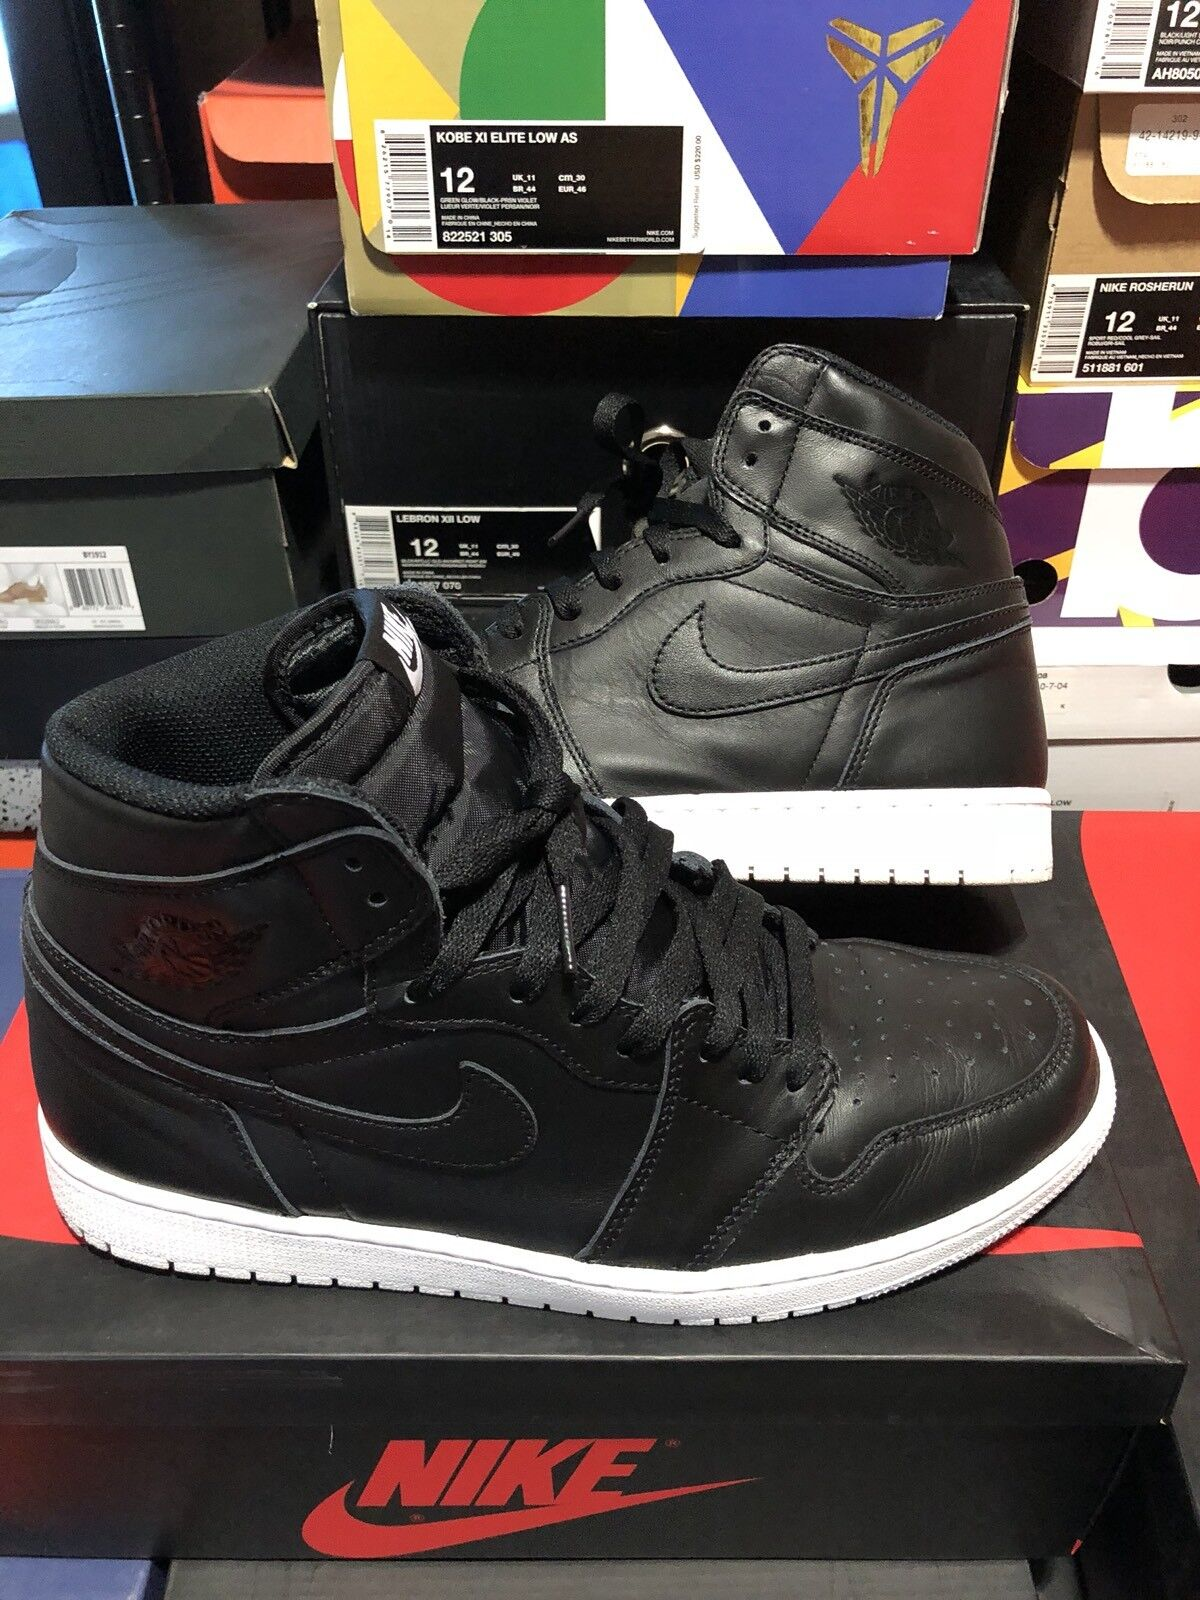 Jordan 1 Retro High Cyber Monday Price reduction The most popular shoes for men and women